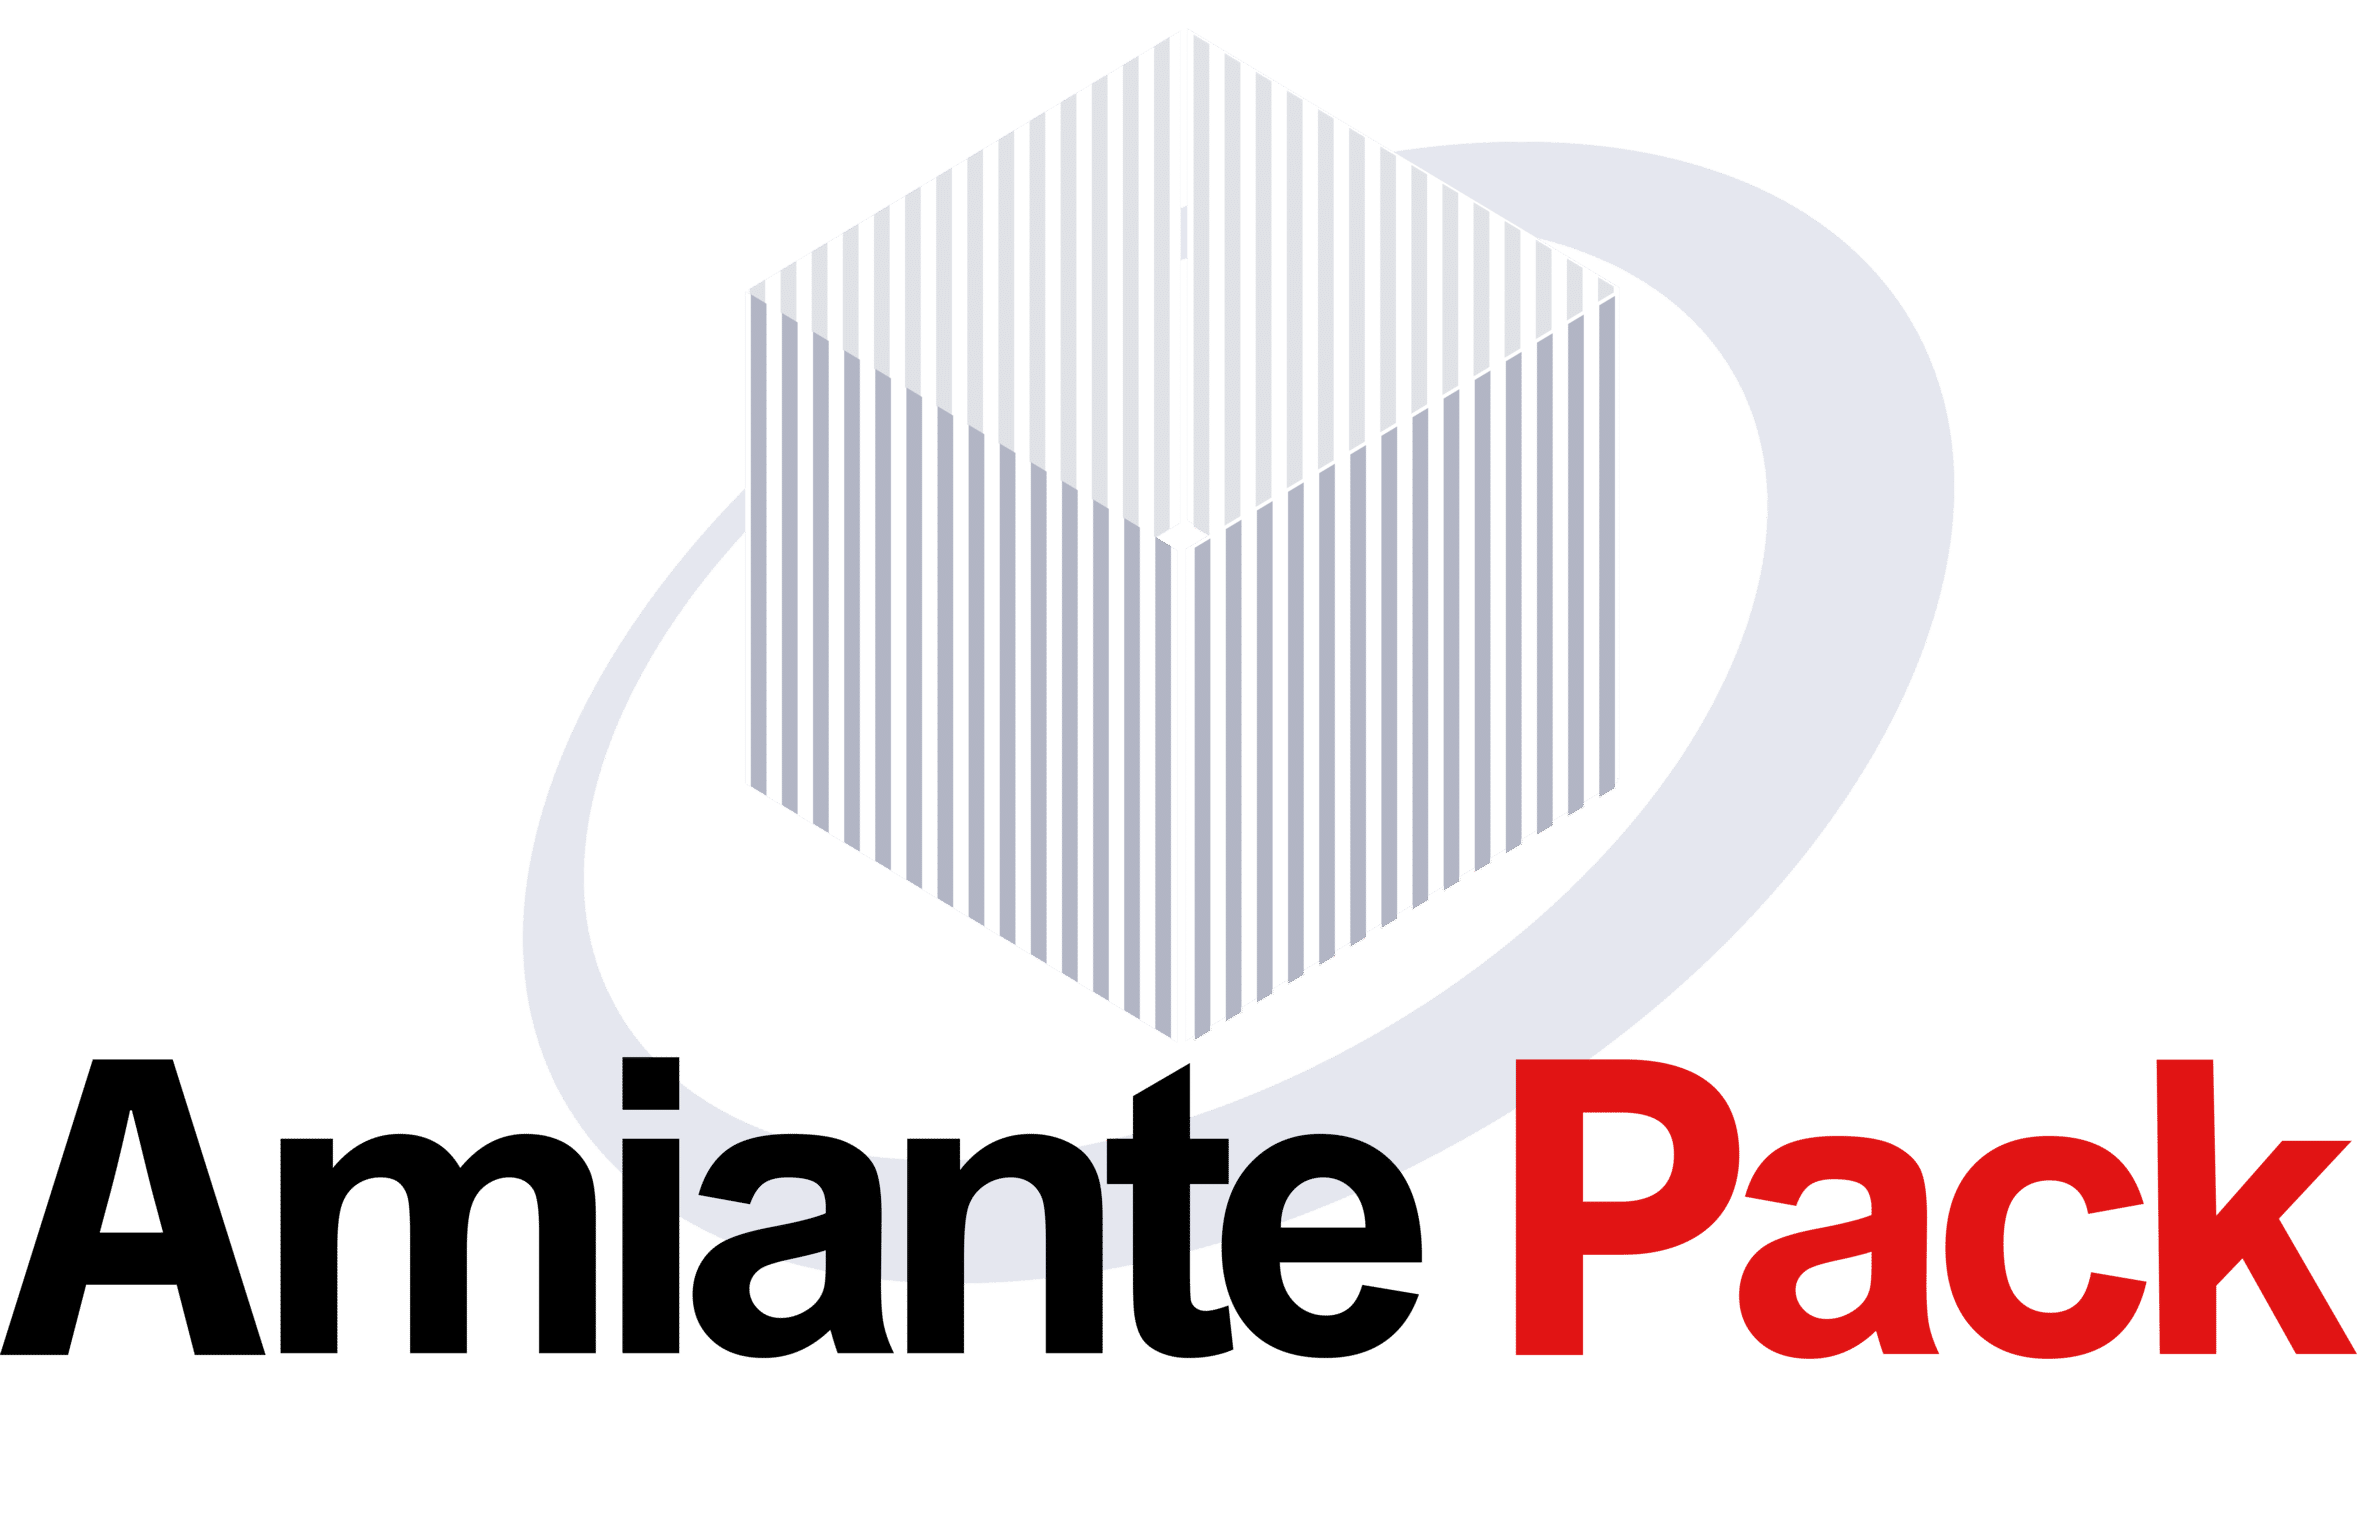 Amiante Pack